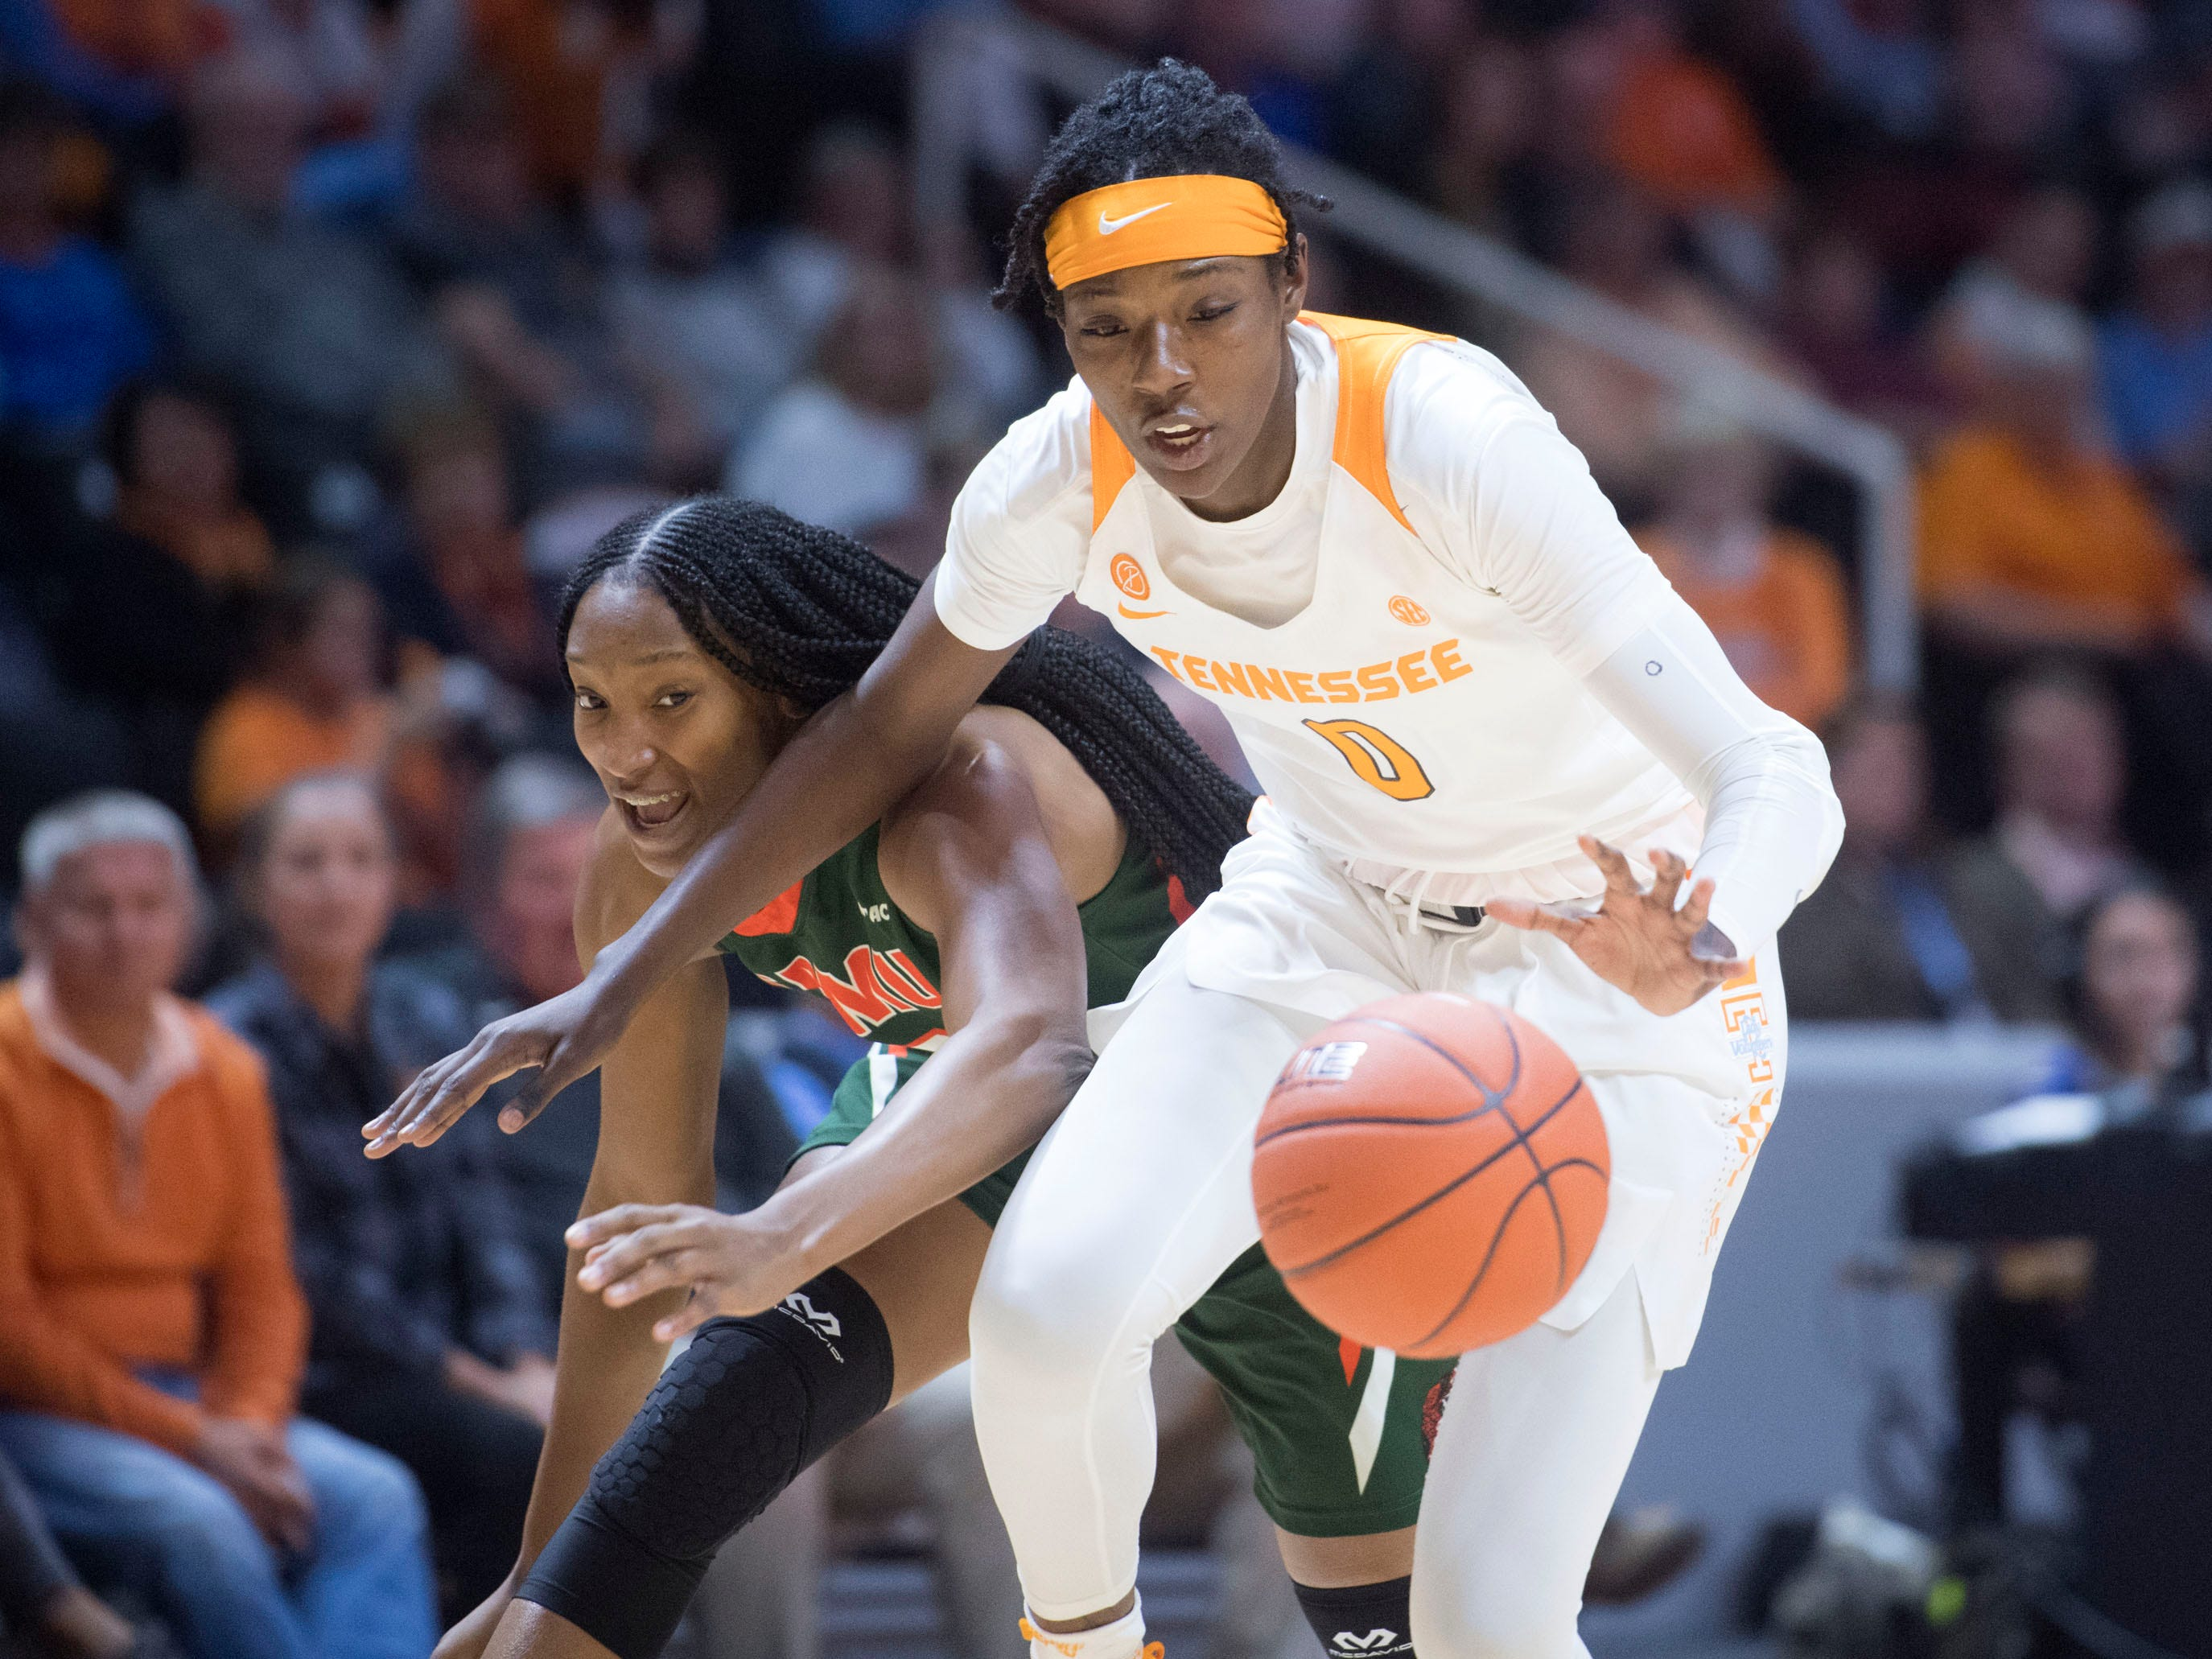 /Tennessee's Rennia Davis (0) protects the ball from Florida A&M's Dy'Manee Royal (13) on Sunday, November 18, 2018 at Thompson-Boling Arena.